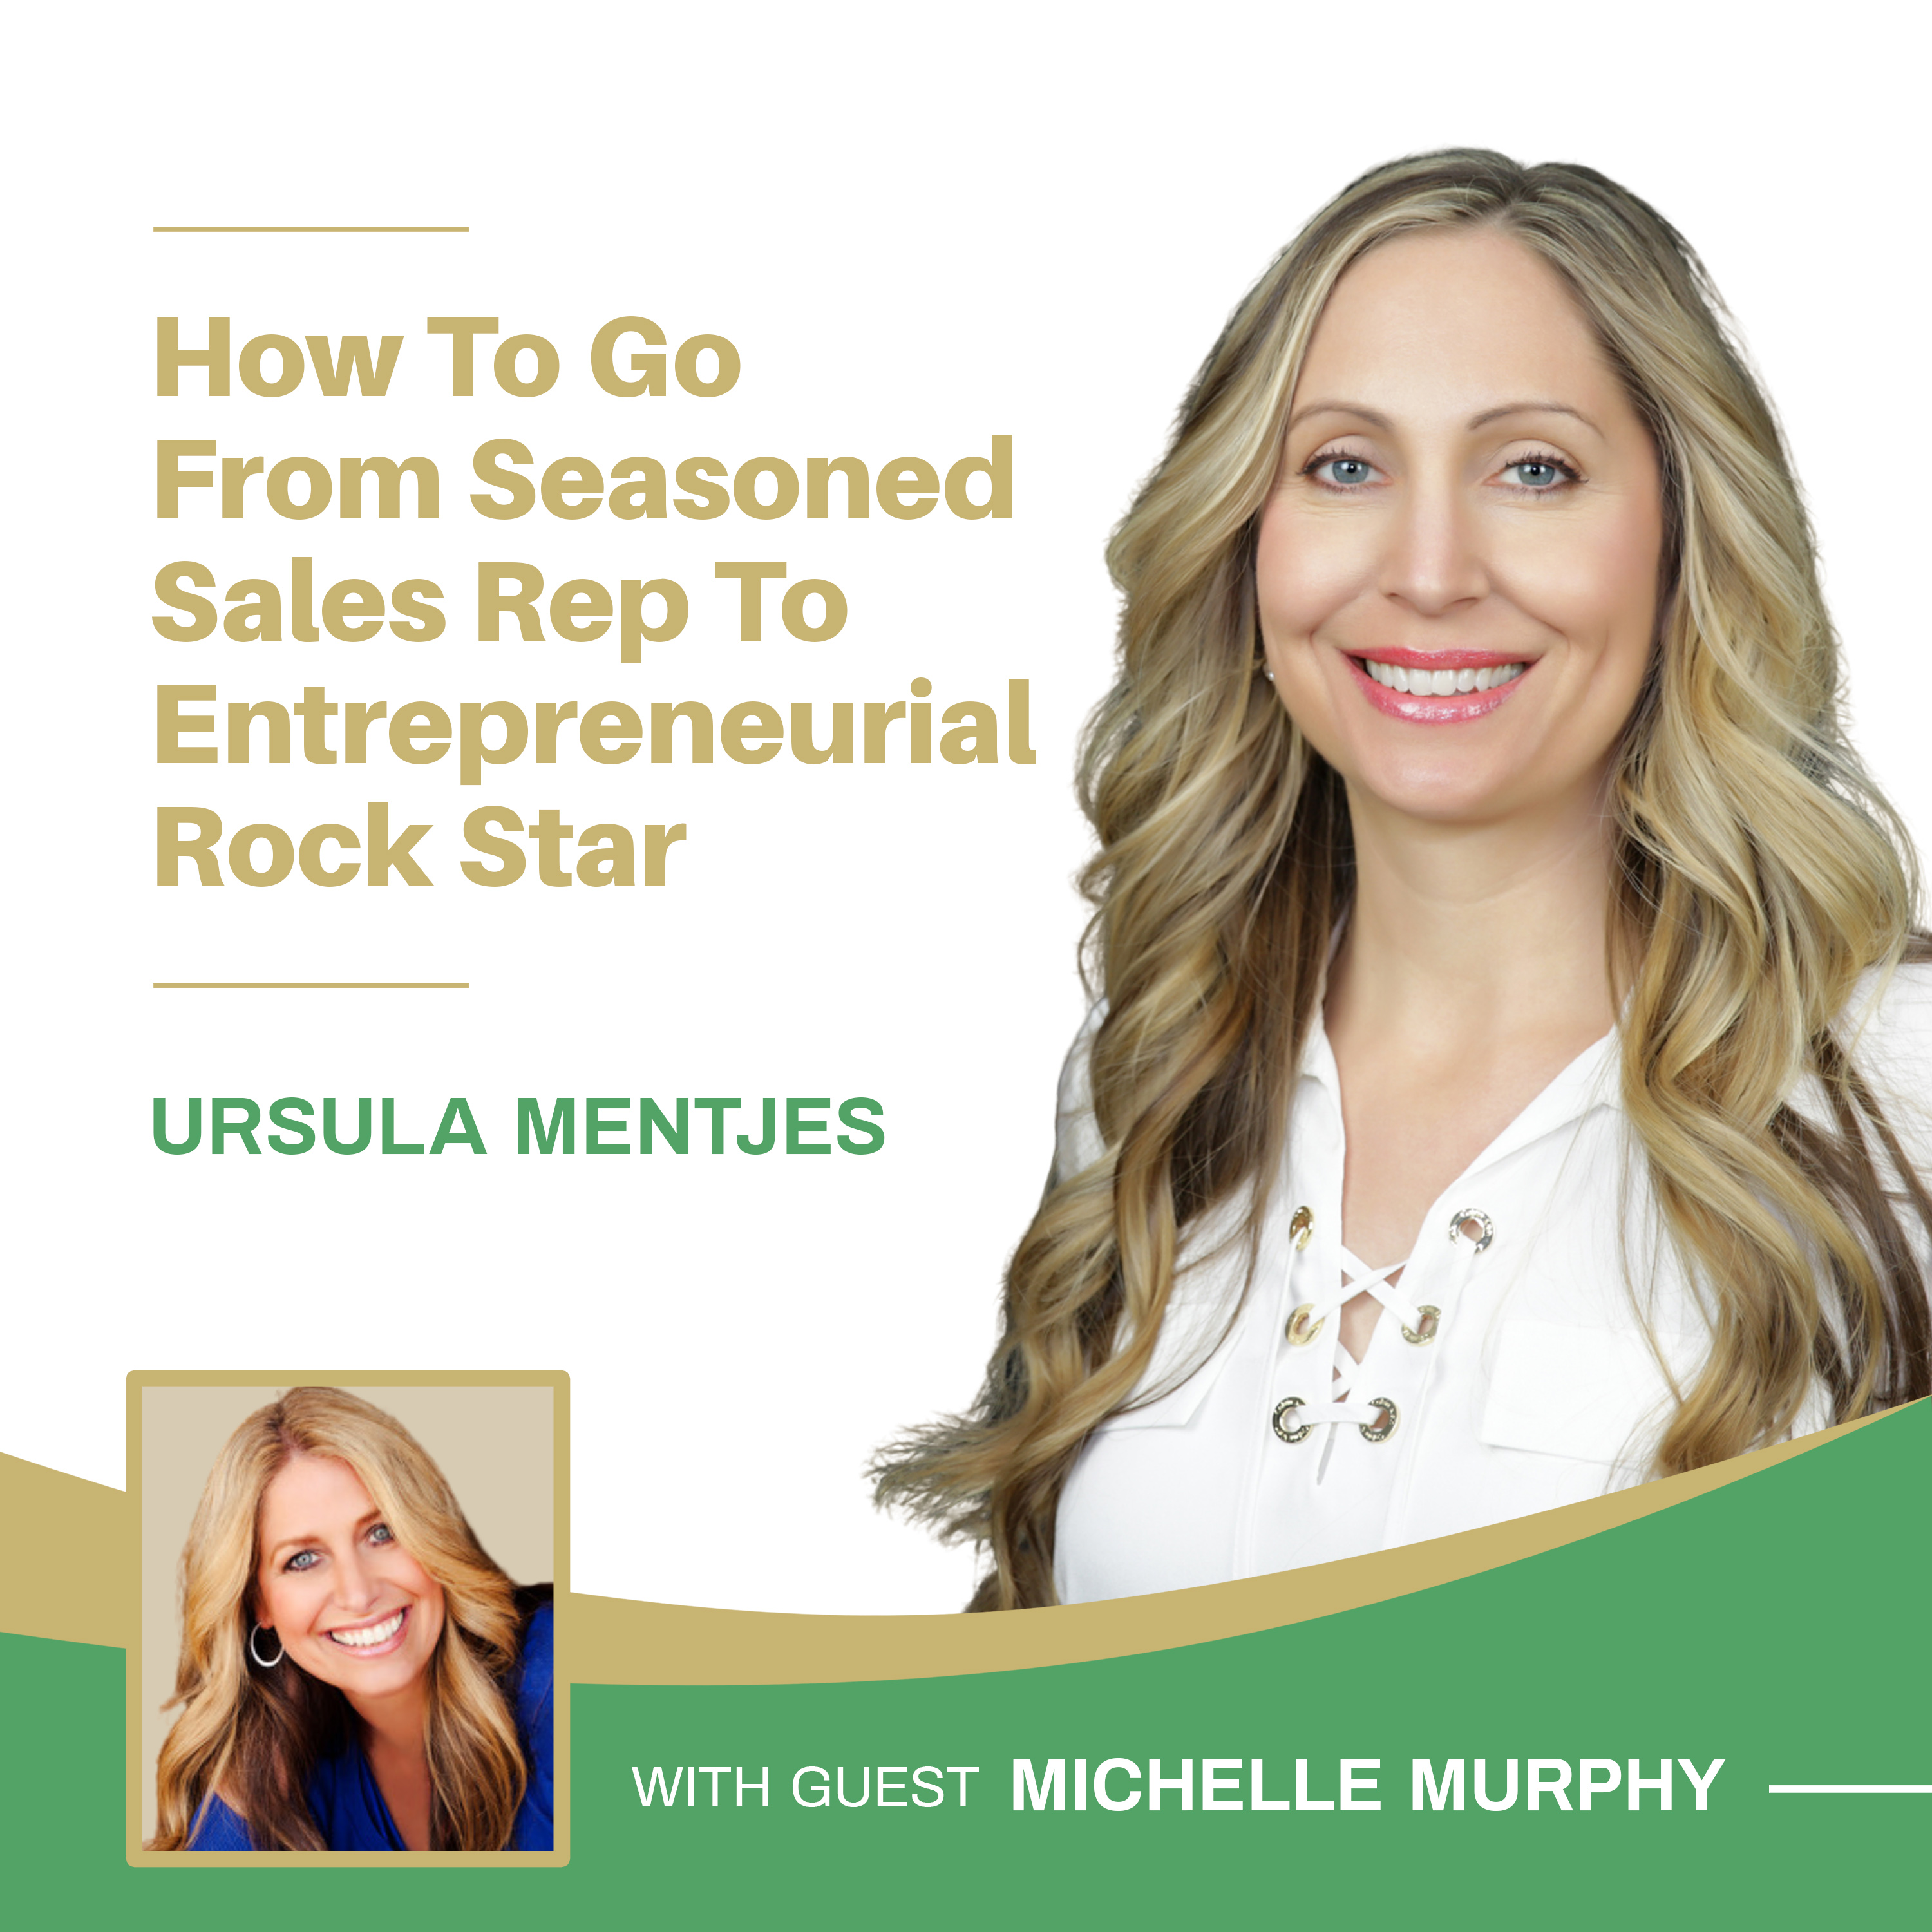 EP143: How To Go From Seasoned Sales Rep To Entrepreneurial Rock Star With Michelle Murphy